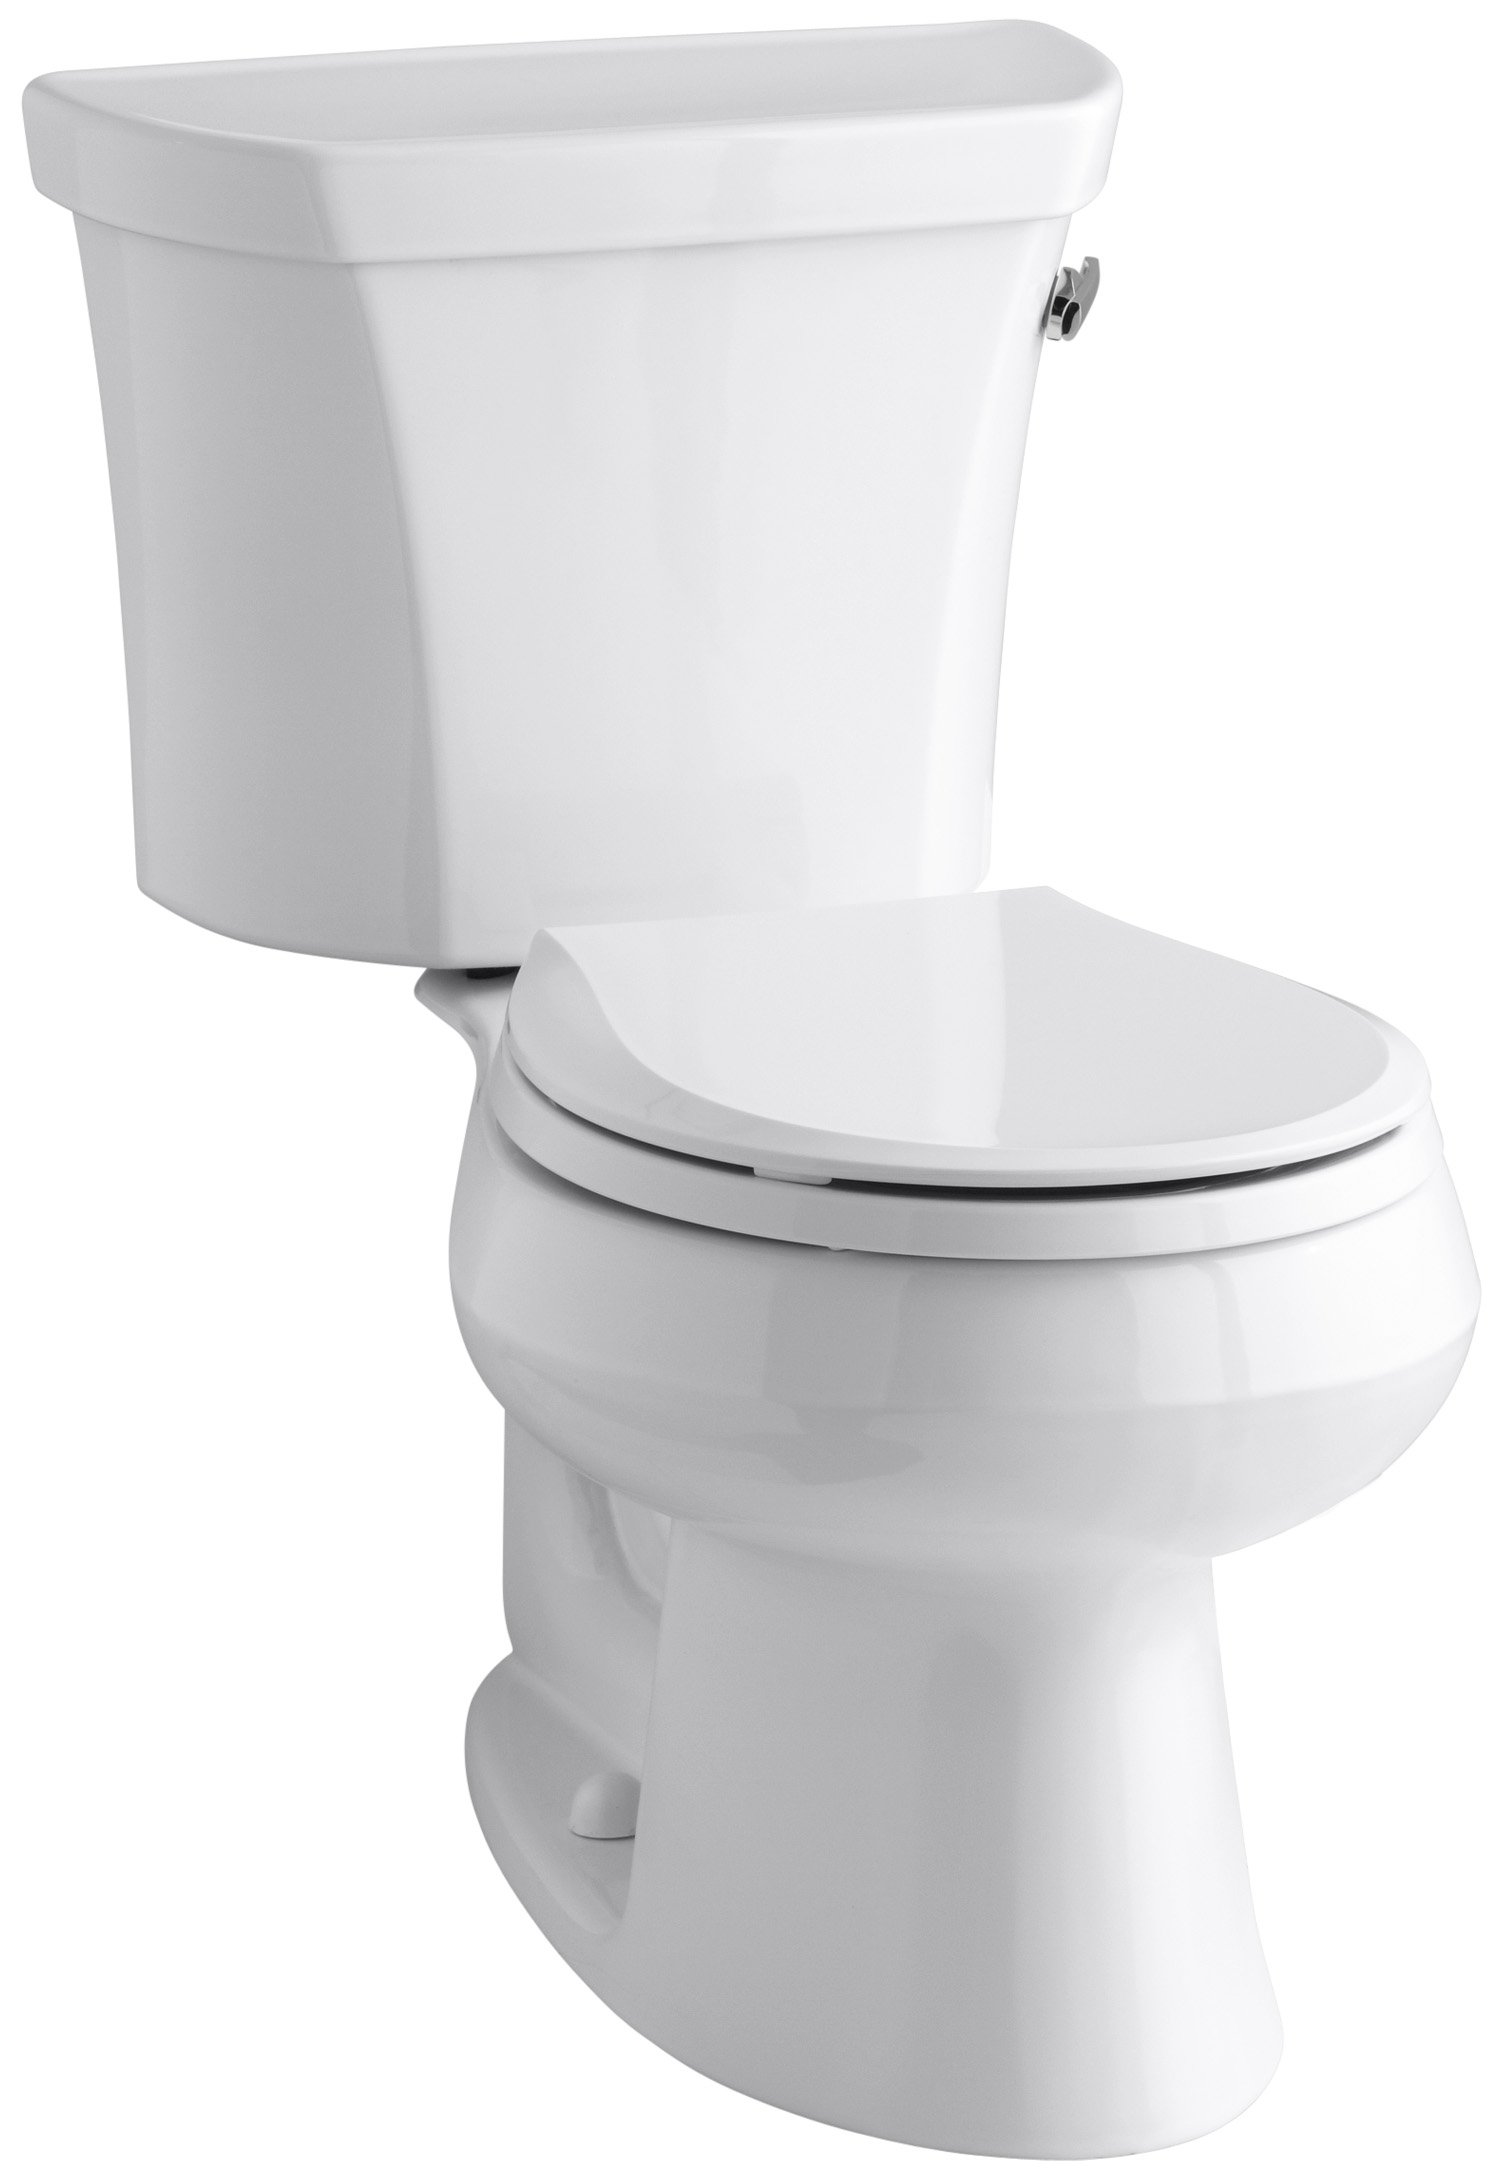 Kohler K-3977-RA-0 Wellworth Round-Front 1.6 gpf Toilet, Right-Hand Trip Lever, White by Kohler